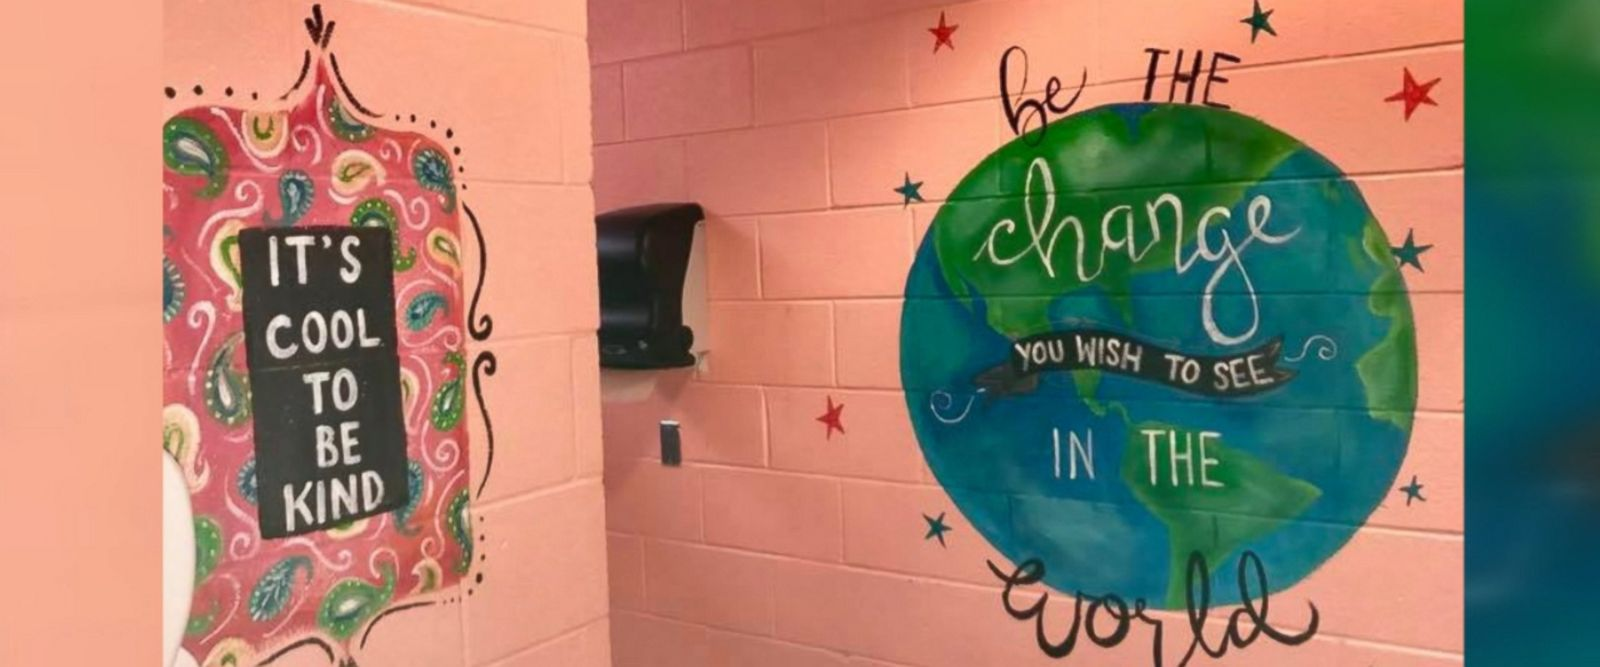 "Shari Jackson Link of Fayetteville, North Carolina, painted the positive messages in the girls' bathrooms at Fayetteville Academy to ""inspire them to be nice."""